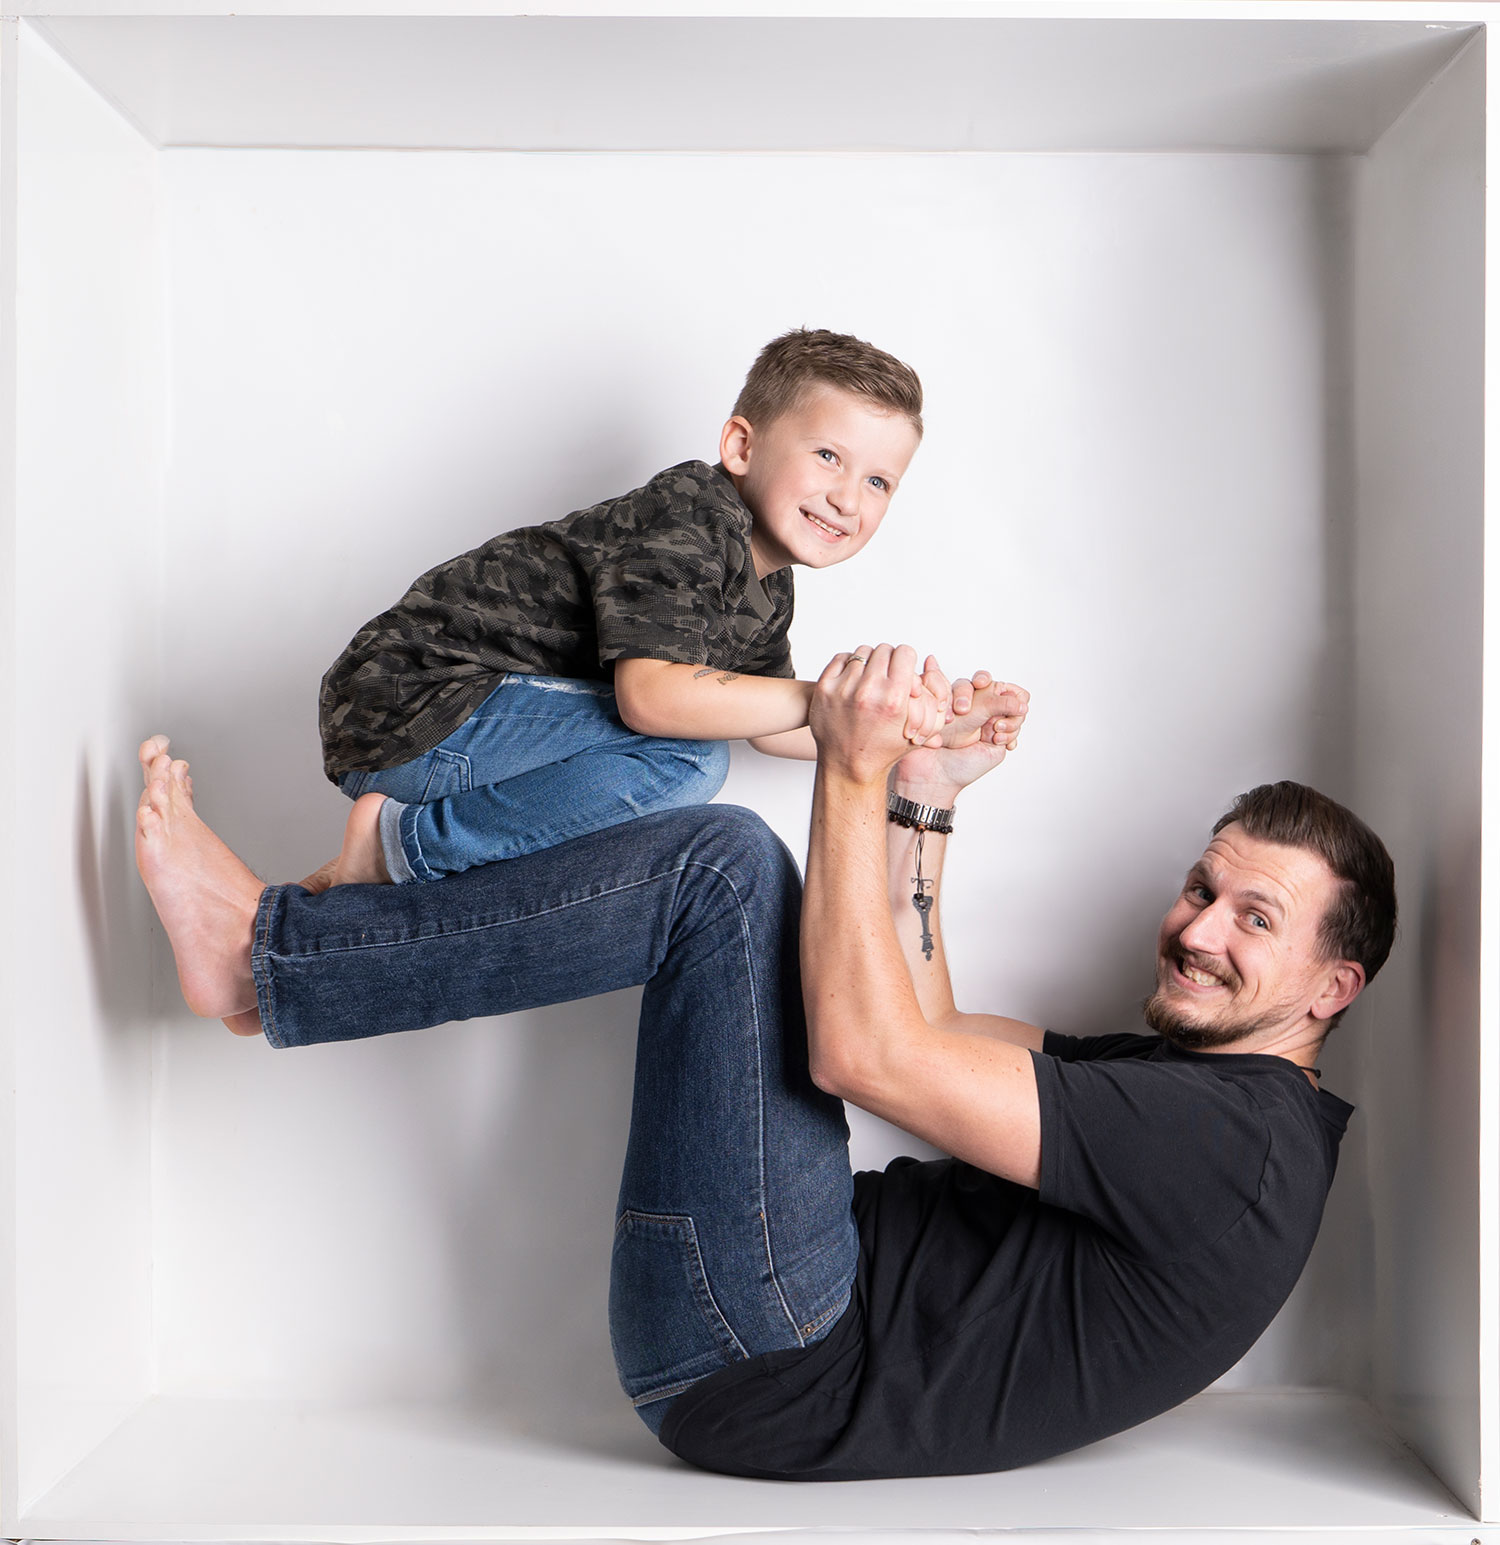 Daddy and son playing in the box